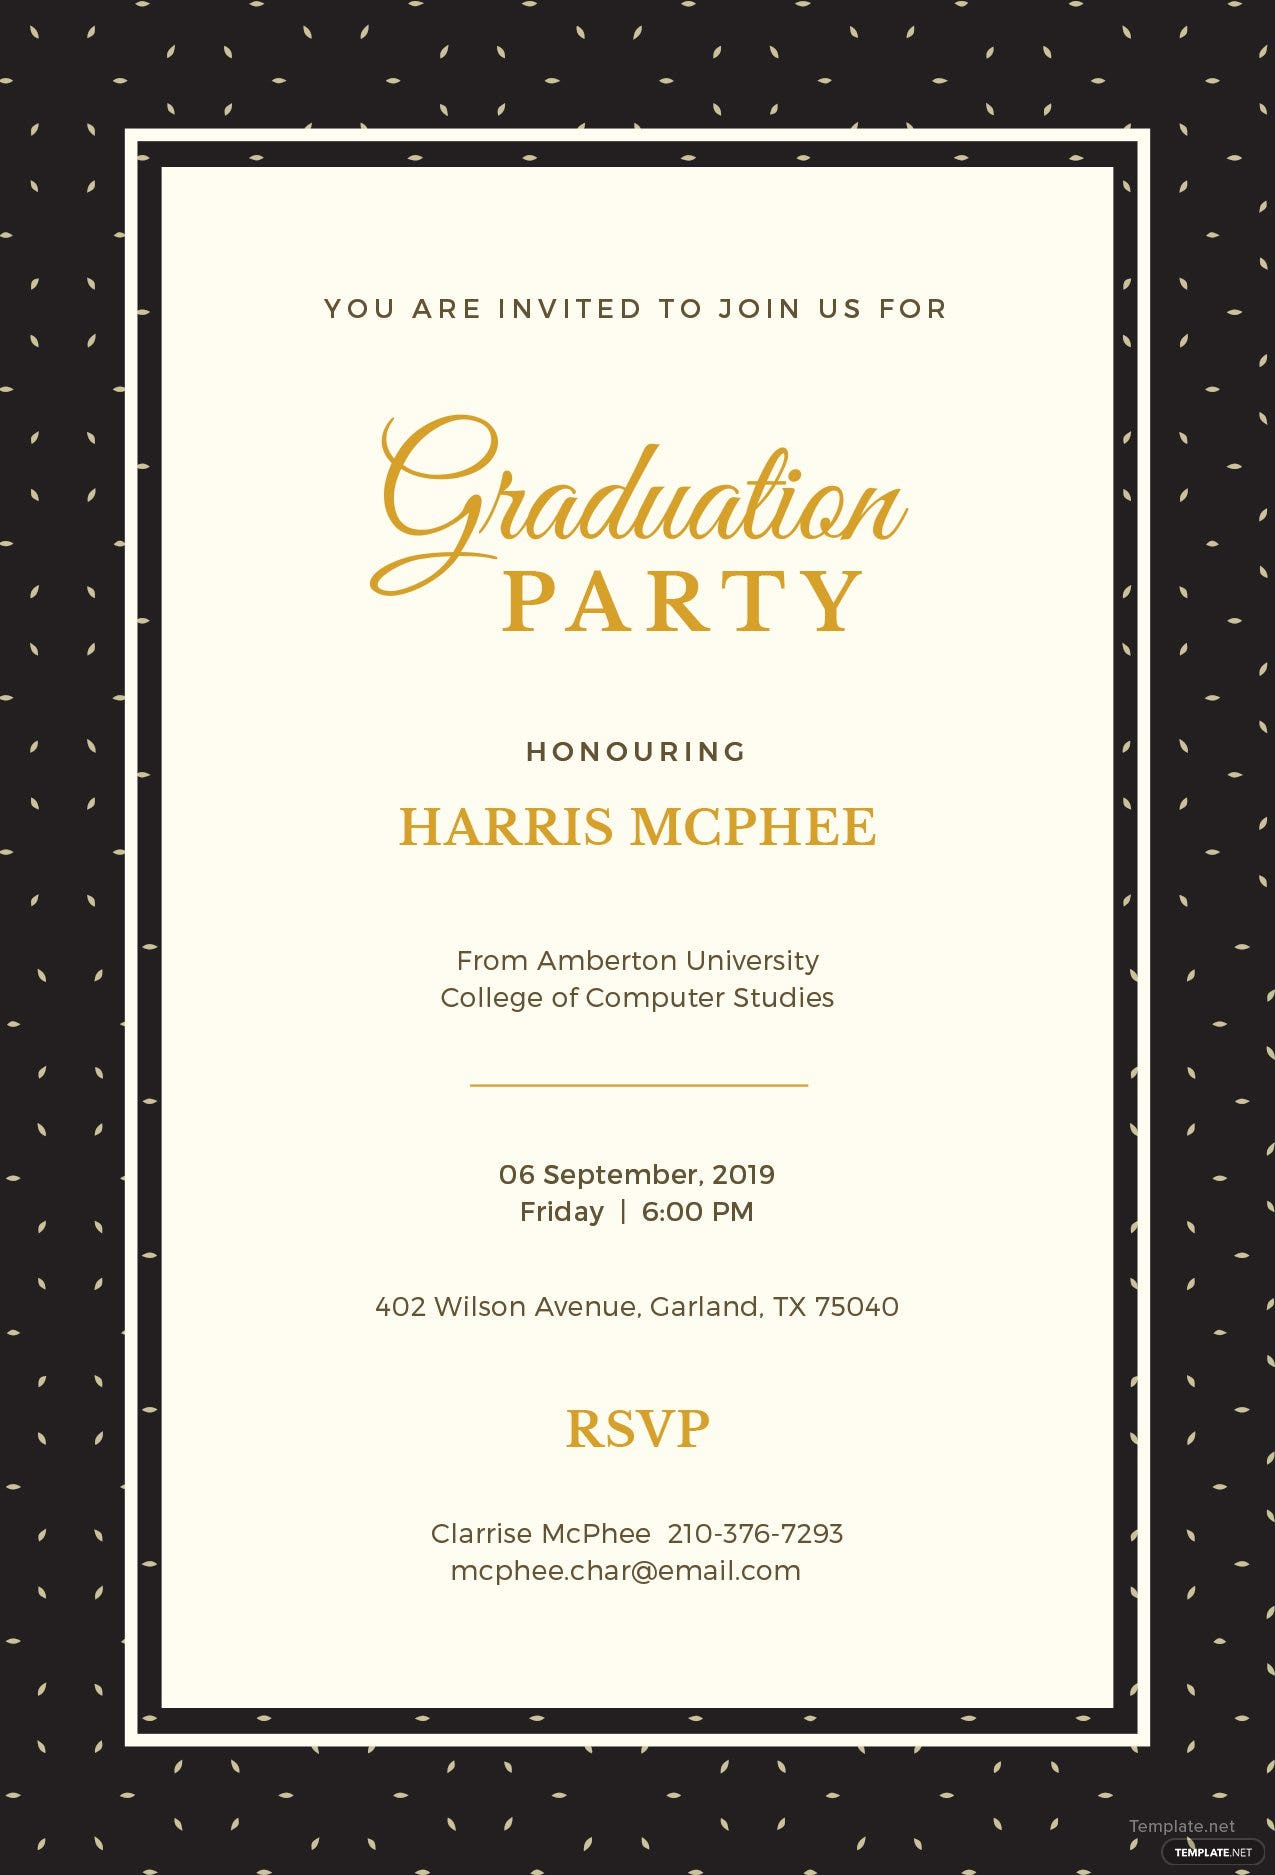 free graduation invitation template in adobe photoshop illustrator microsoft word publisher. Black Bedroom Furniture Sets. Home Design Ideas